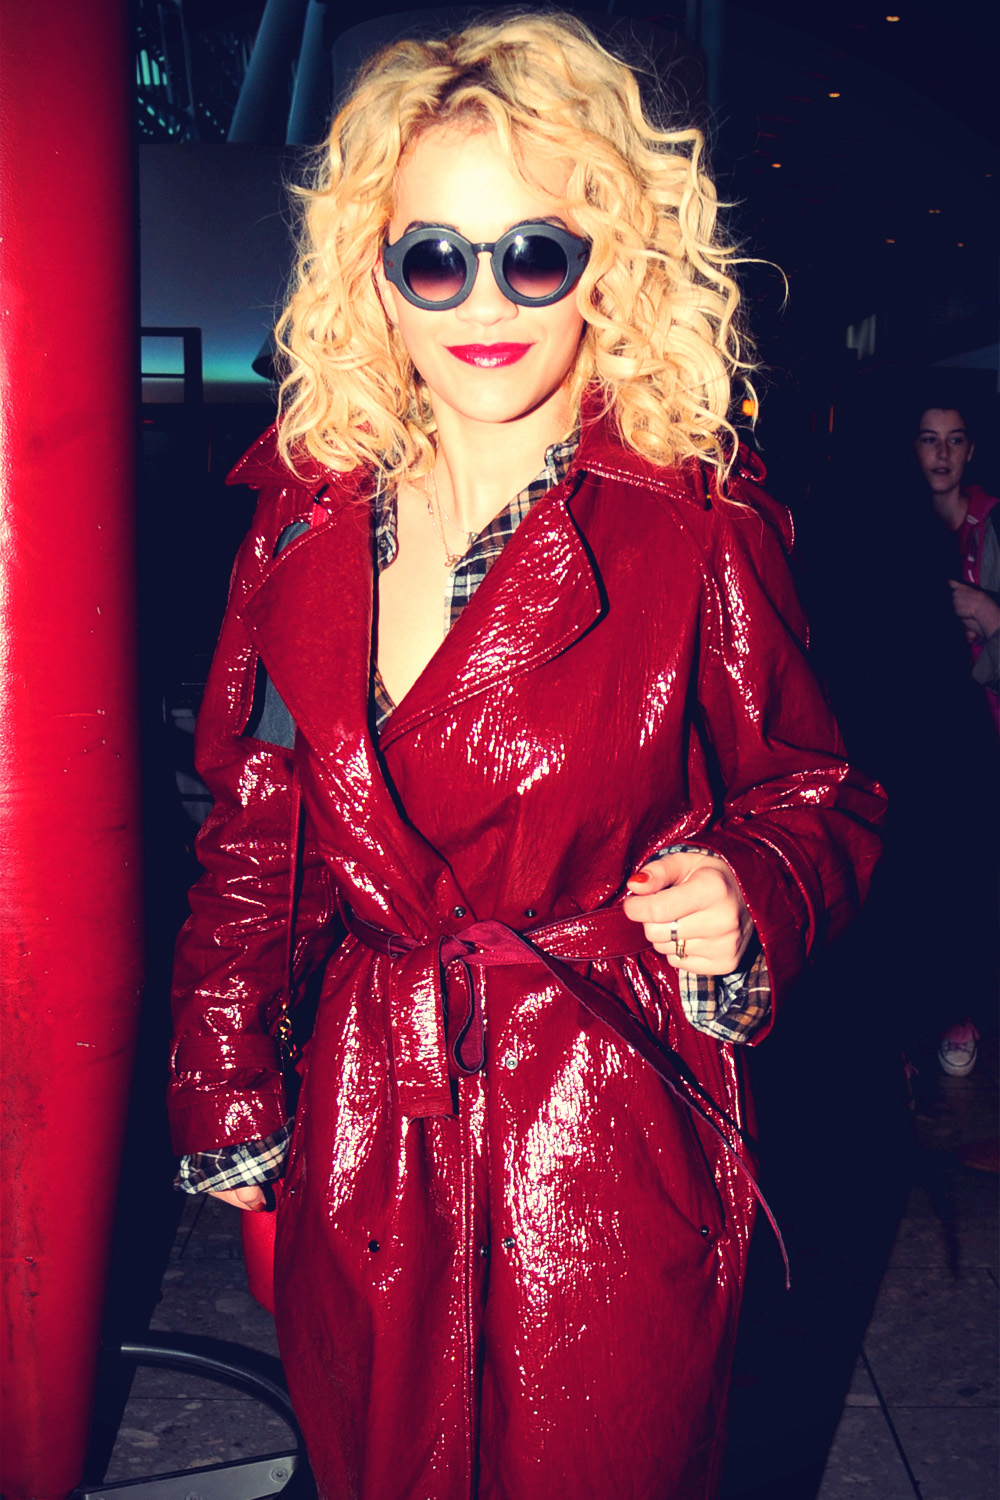 Rita Ora flies in from Boston to Heathrow Airport